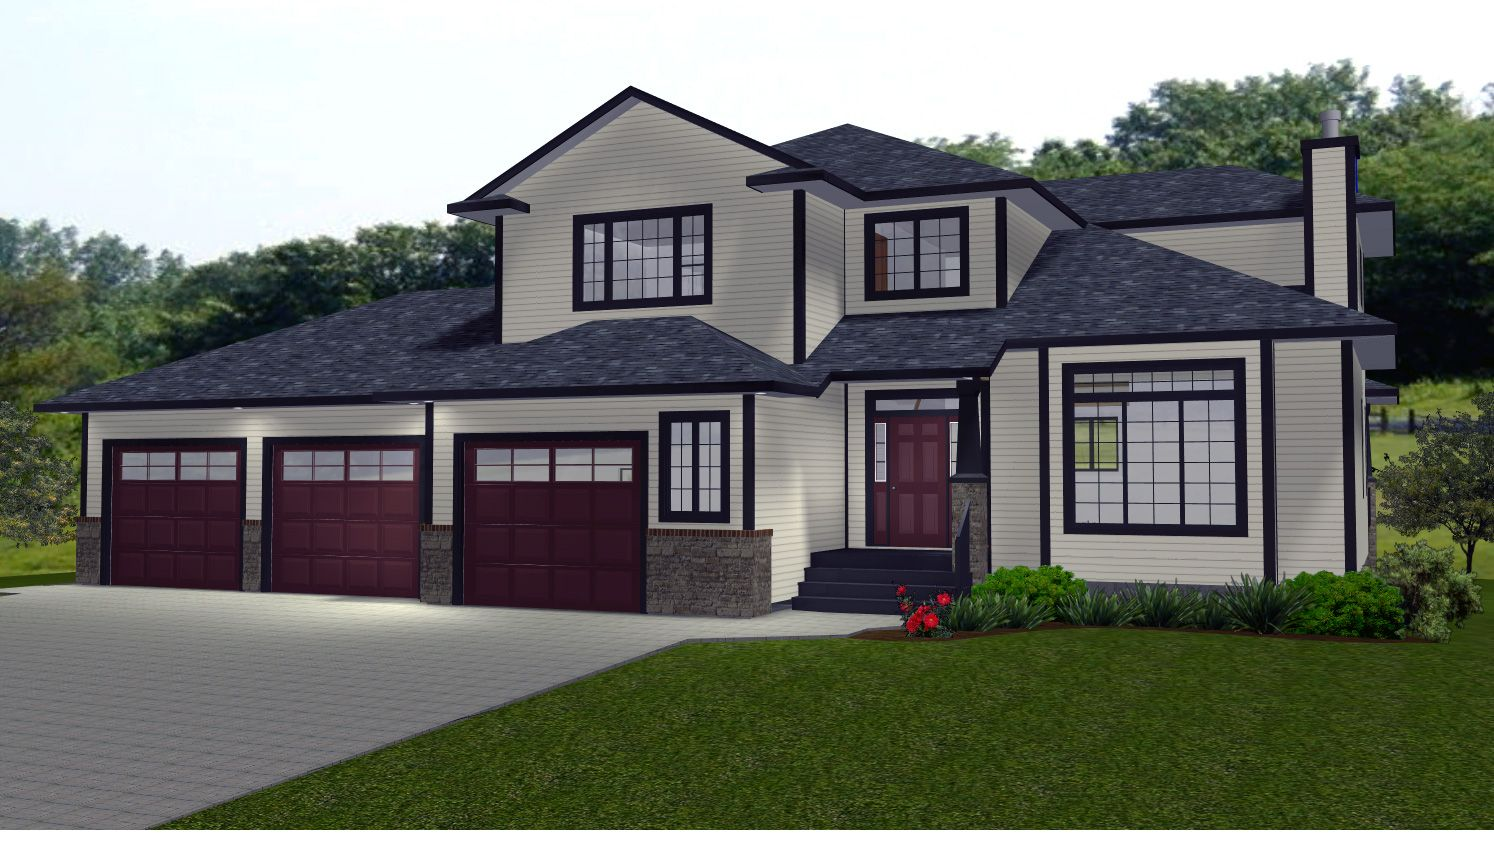 2 Storey House Plans With Bonus Room Over Garage Plans by Edesigns – 3 Car Garage Plans With Bonus Room